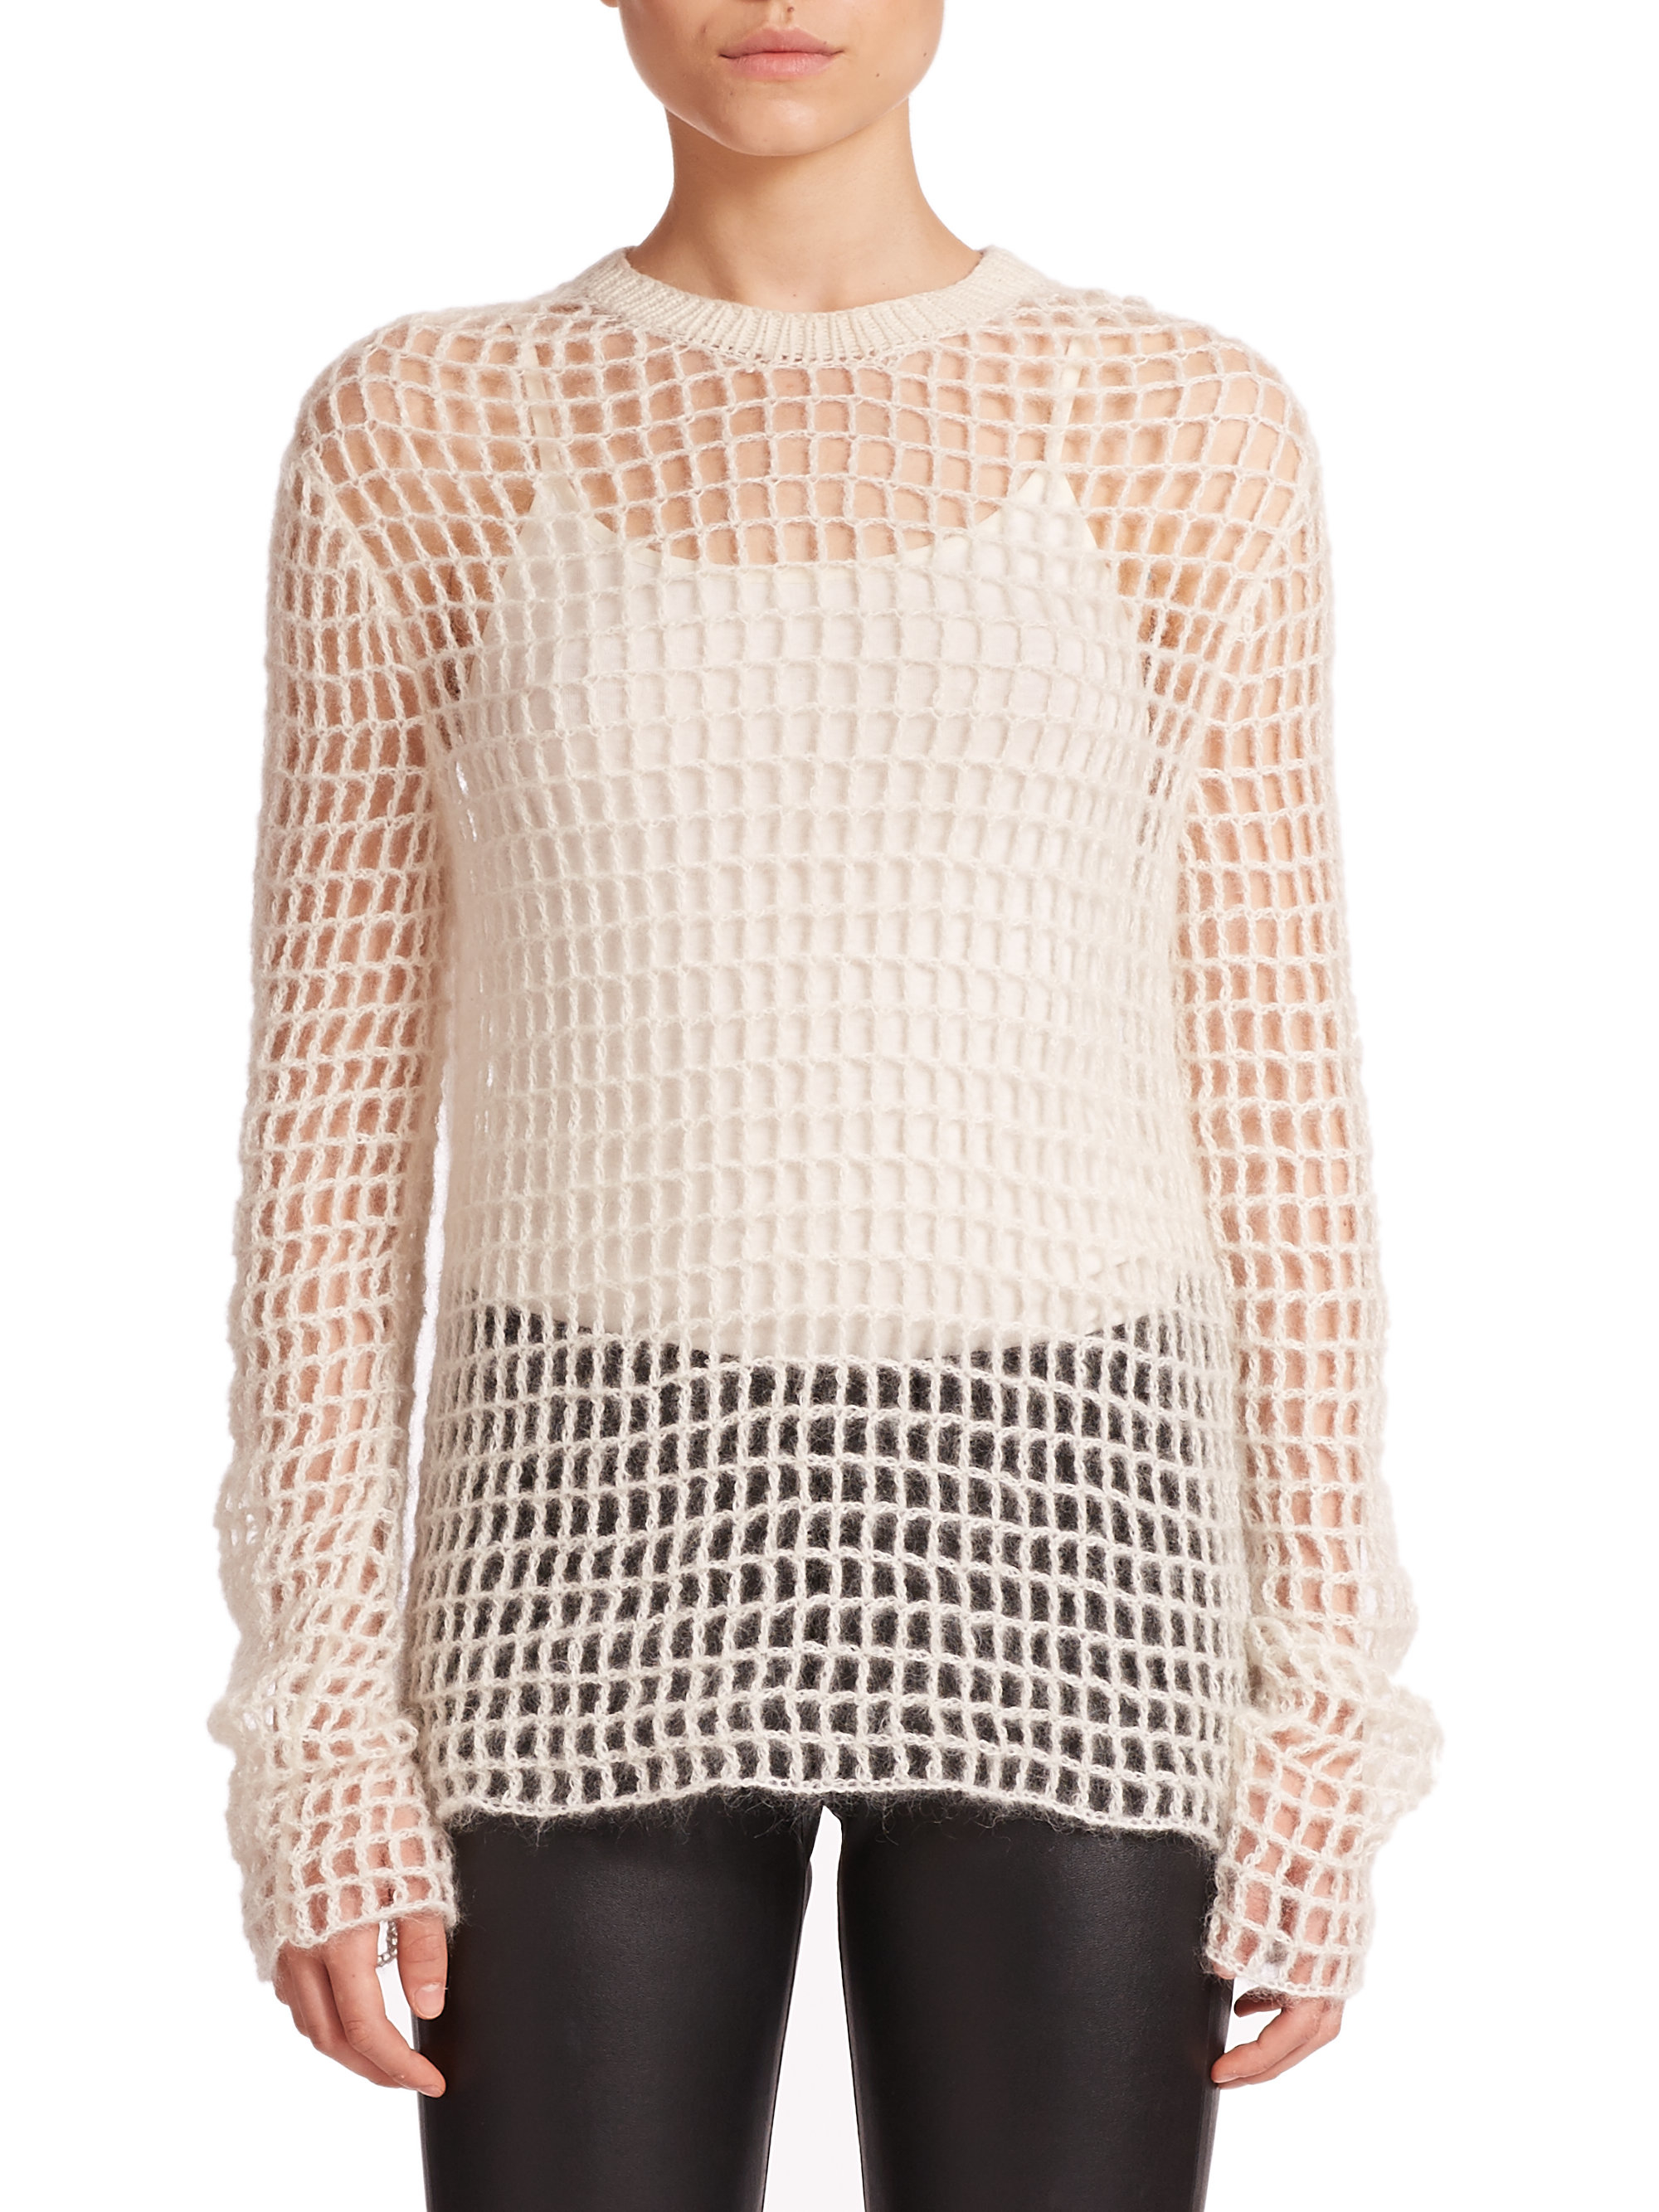 763ee4ca6bf184 Lyst - Helmut Lang Hand-knit Crochet Sweater in White